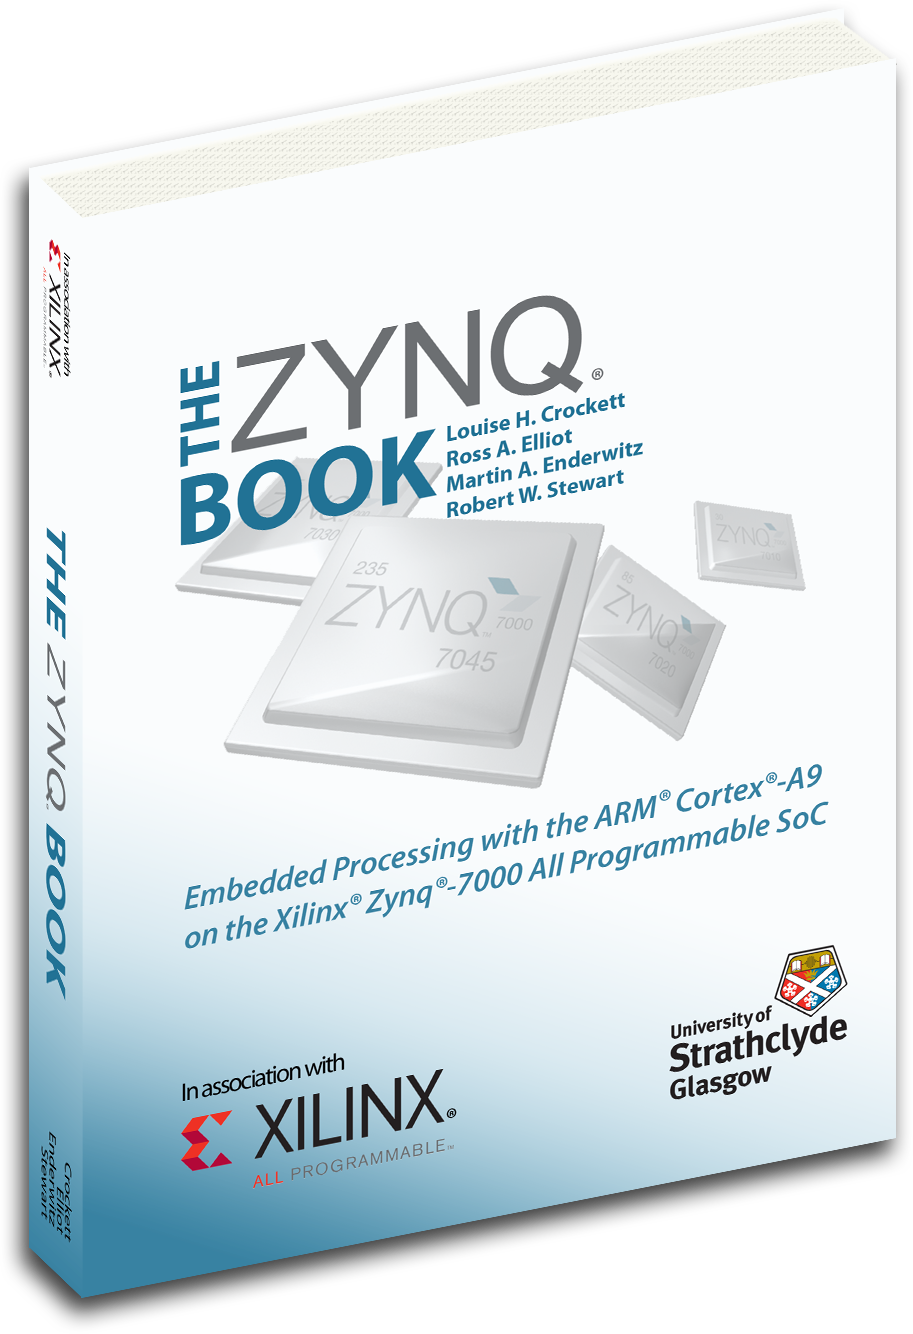 Image of the Zynq Book